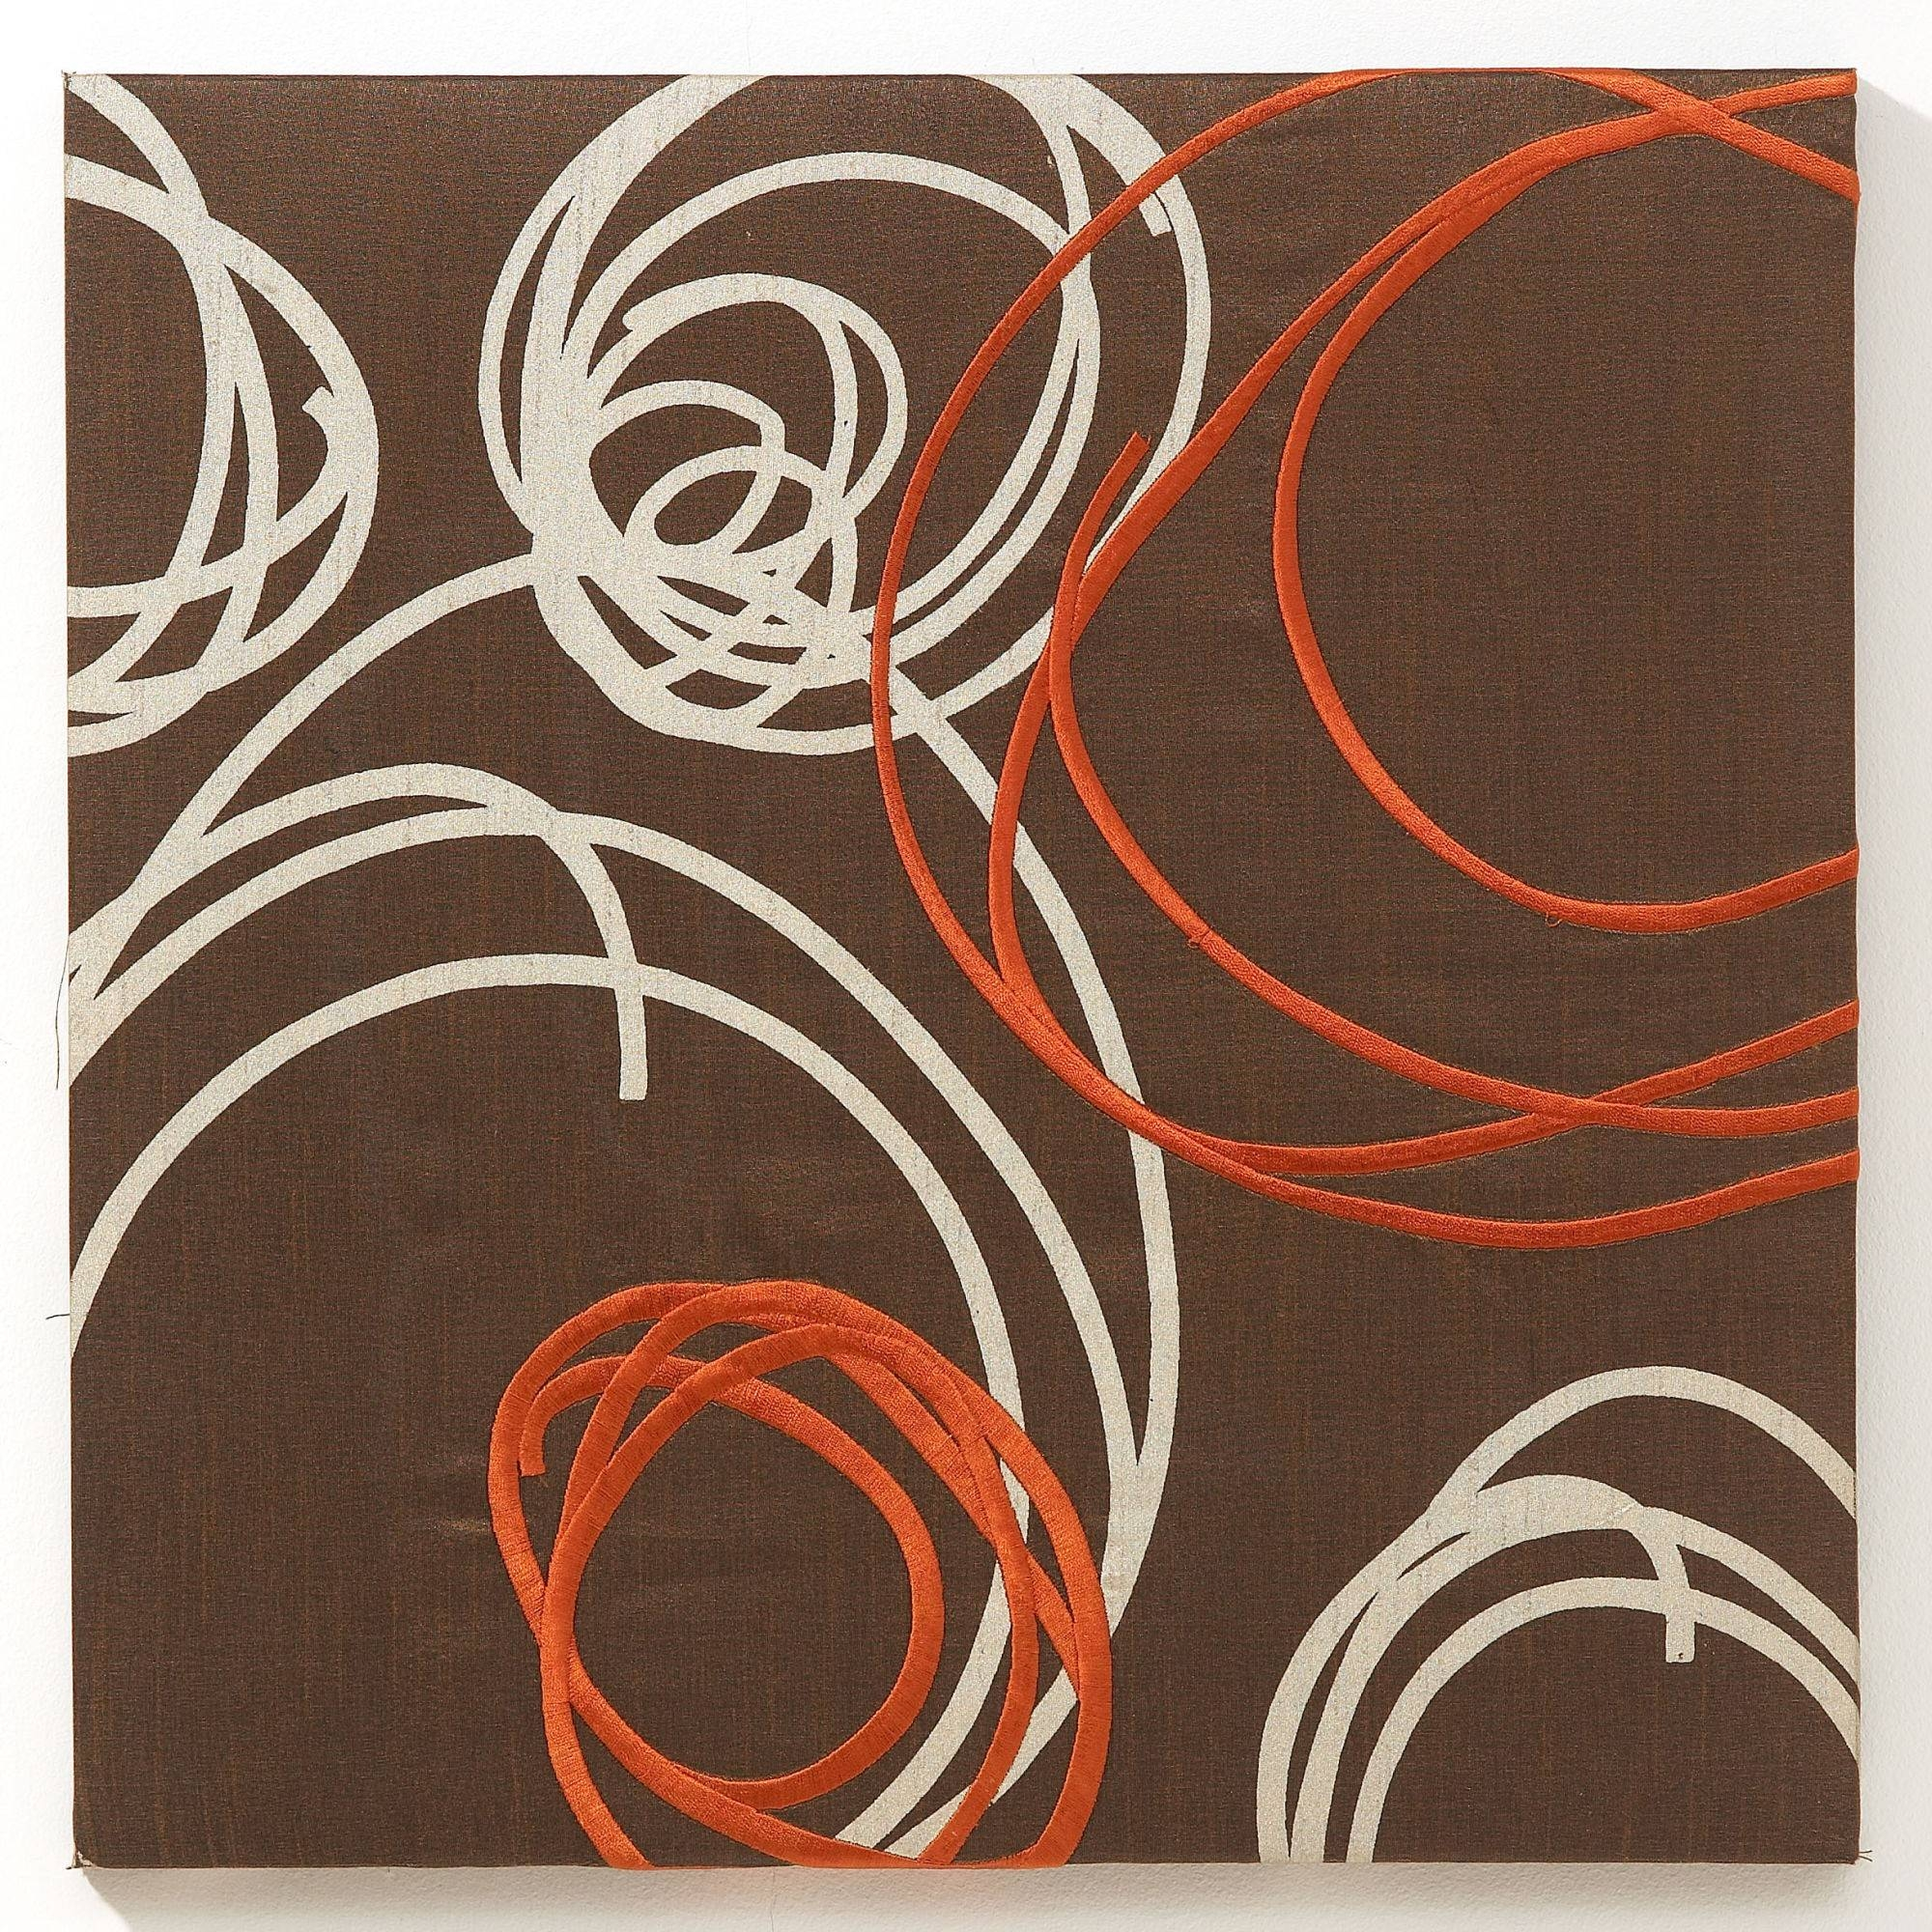 Graham & Brown Orange Silk Swirl Fabric Wall Art – 41711 Intended For Newest Graham & Brown Wall Art (View 13 of 20)